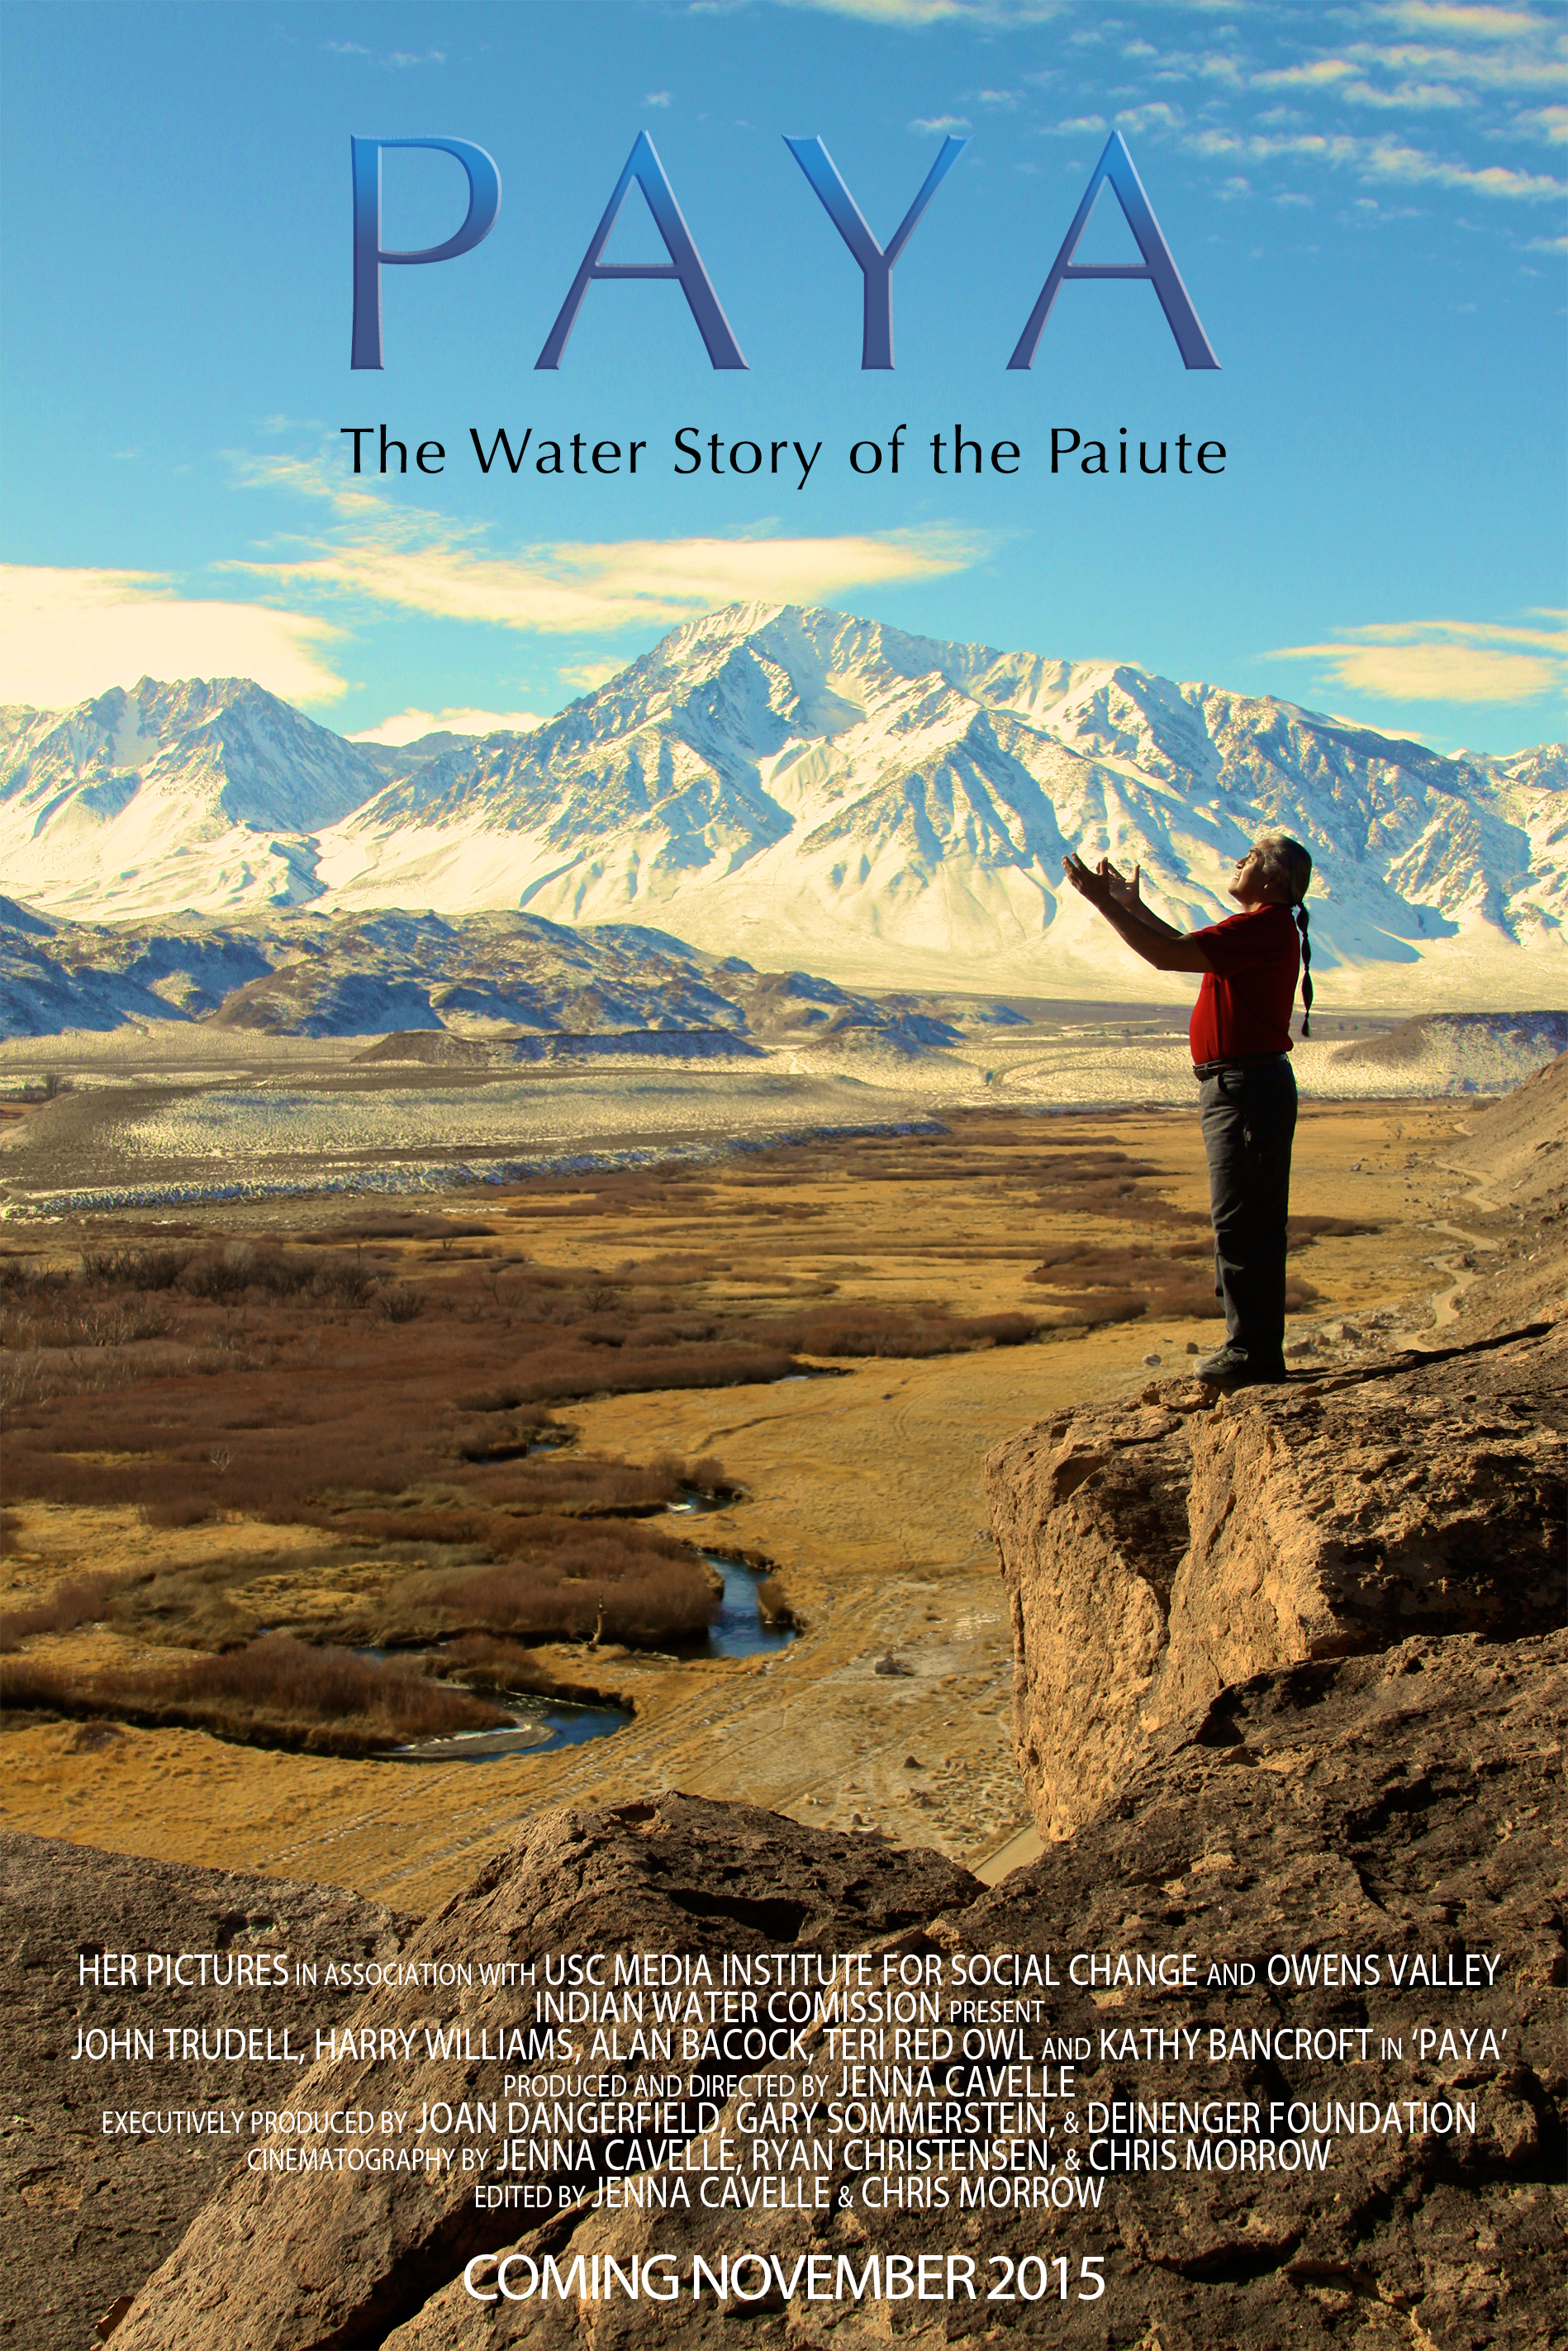 Poster for Paya, The Water Story of the Paiute